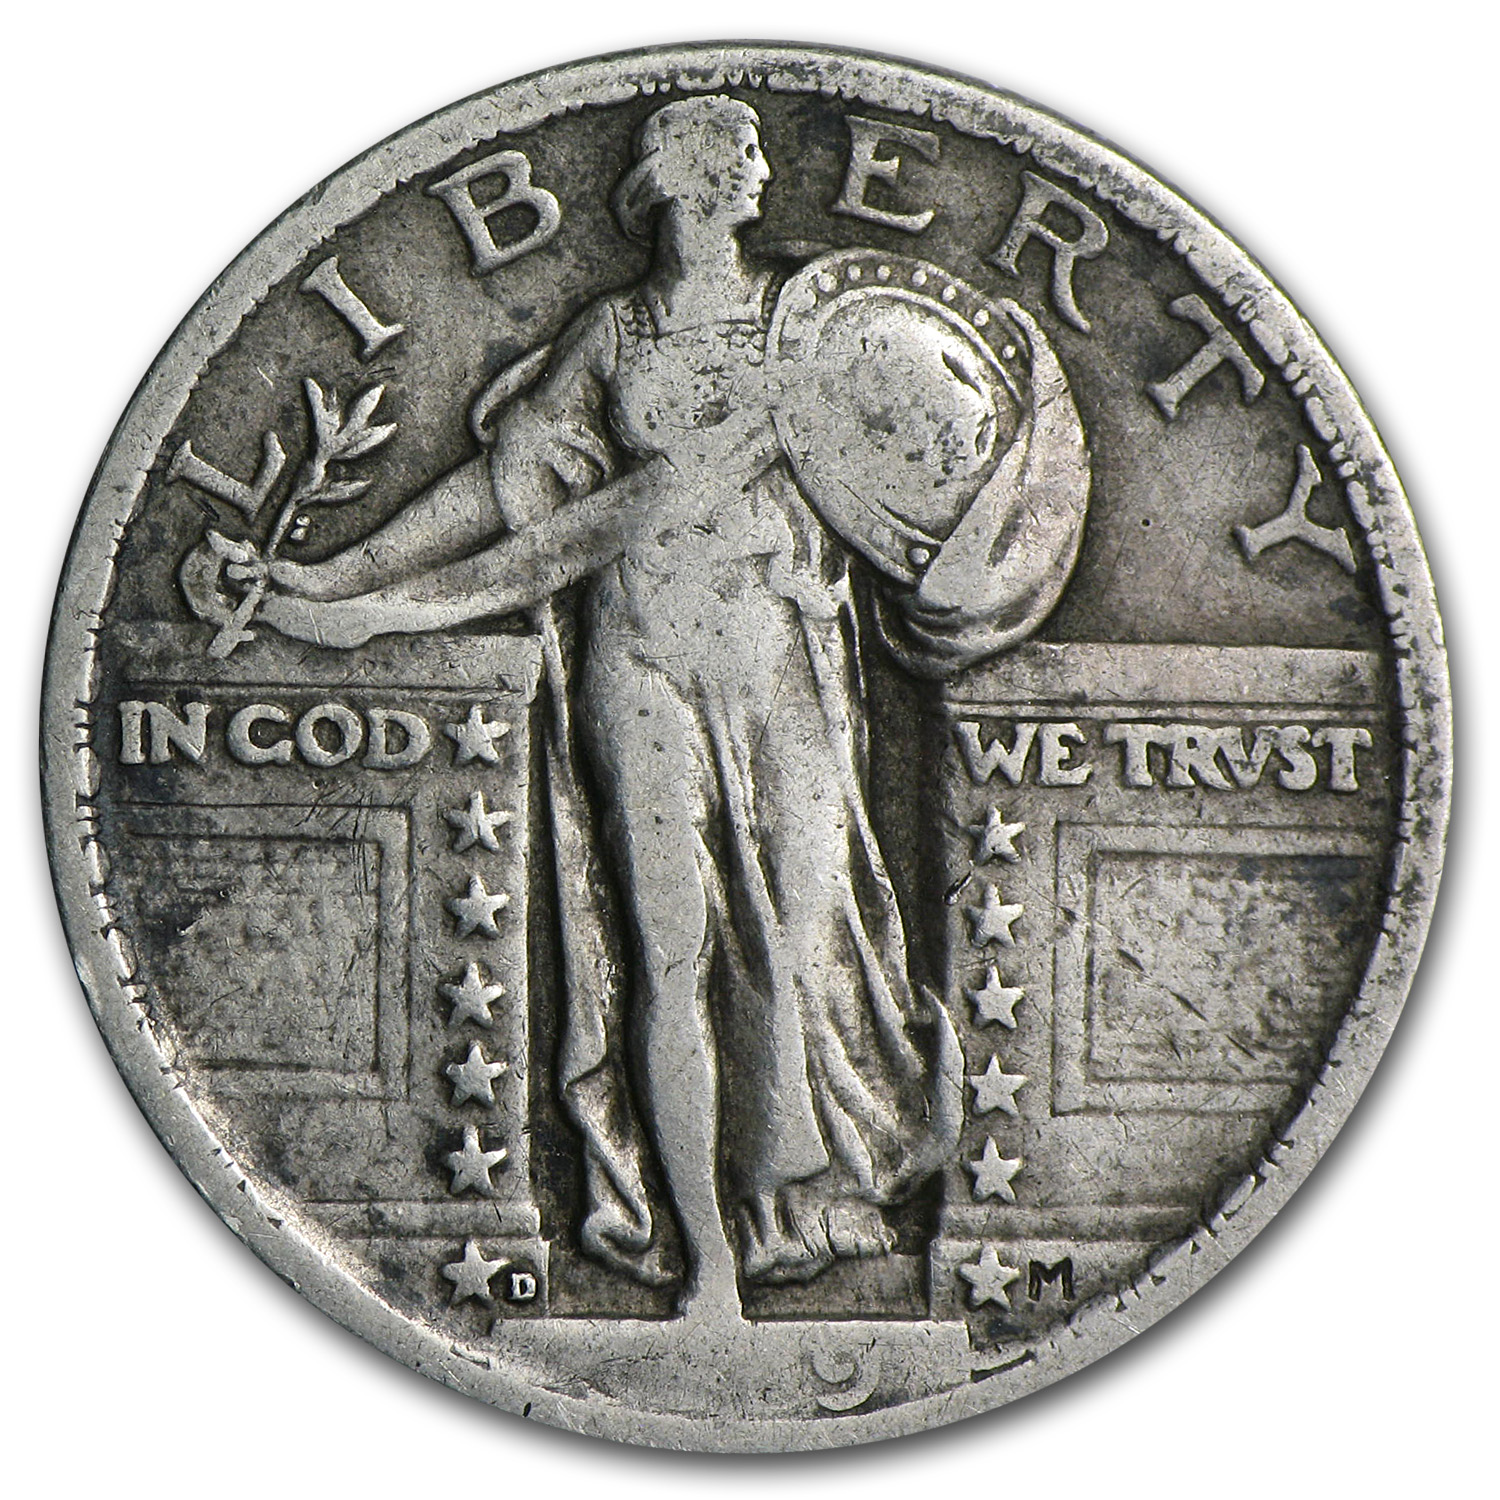 dating standing liberty quarters The 1916 standing liberty quarter is the lowest mintage coin of the series by far, with a mere 52,000 pieces produced this issue actually ranks as one of the lowest mintage circulating coins of the entire twentieth century, solidifying its status as an important key date the tiny mintage was struck at the philadelphia mint.